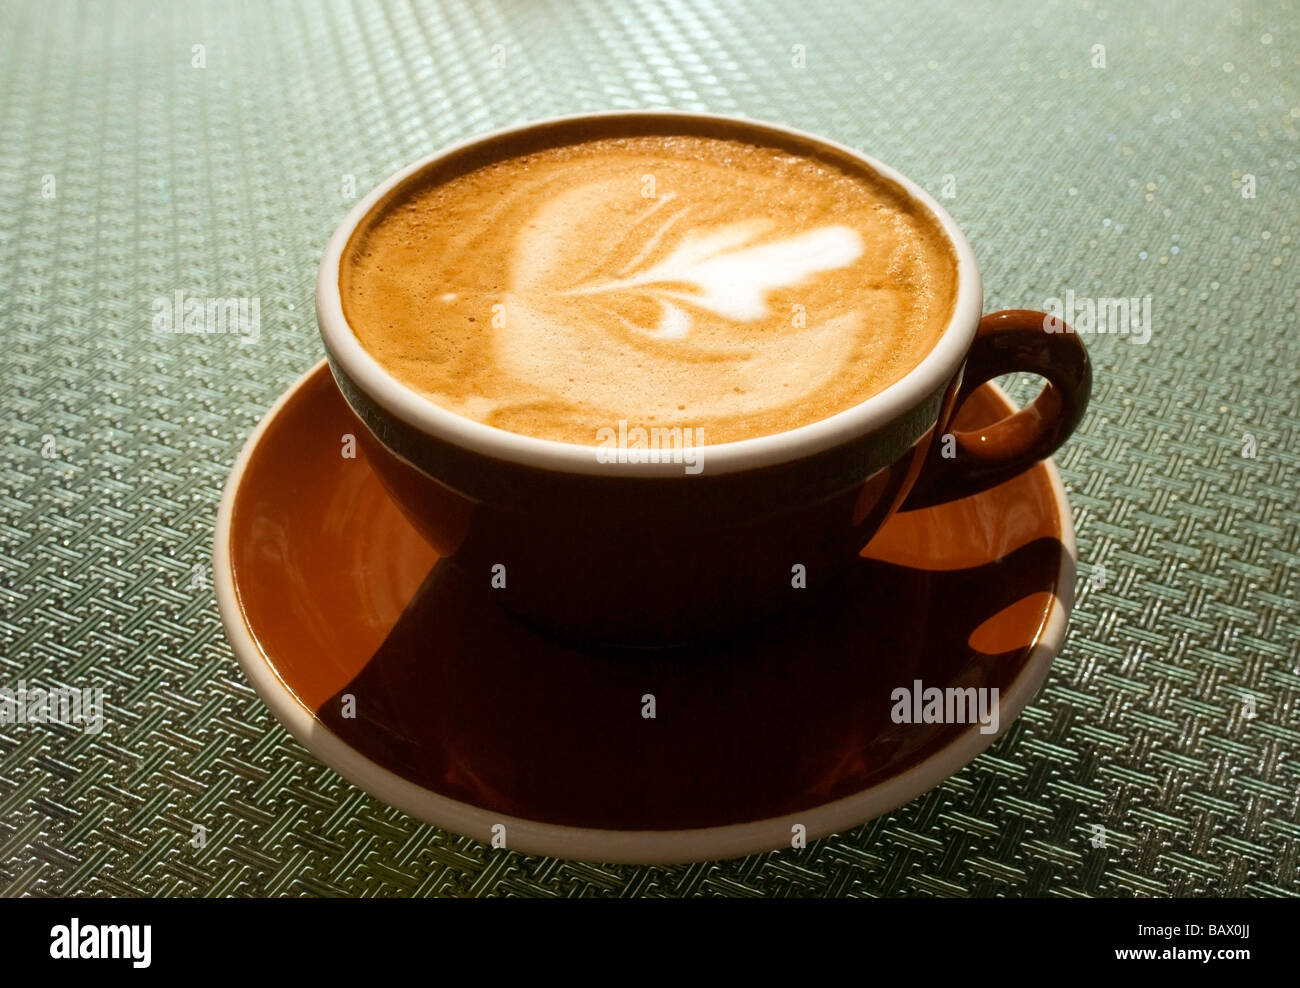 A SINGLE CUP OF COFFEE , KNOWN IN NEW ZEALAND AS A ' FLAT WHITE '  COMPLETE WITH DESIGN IN THE FROTH - Stock Image